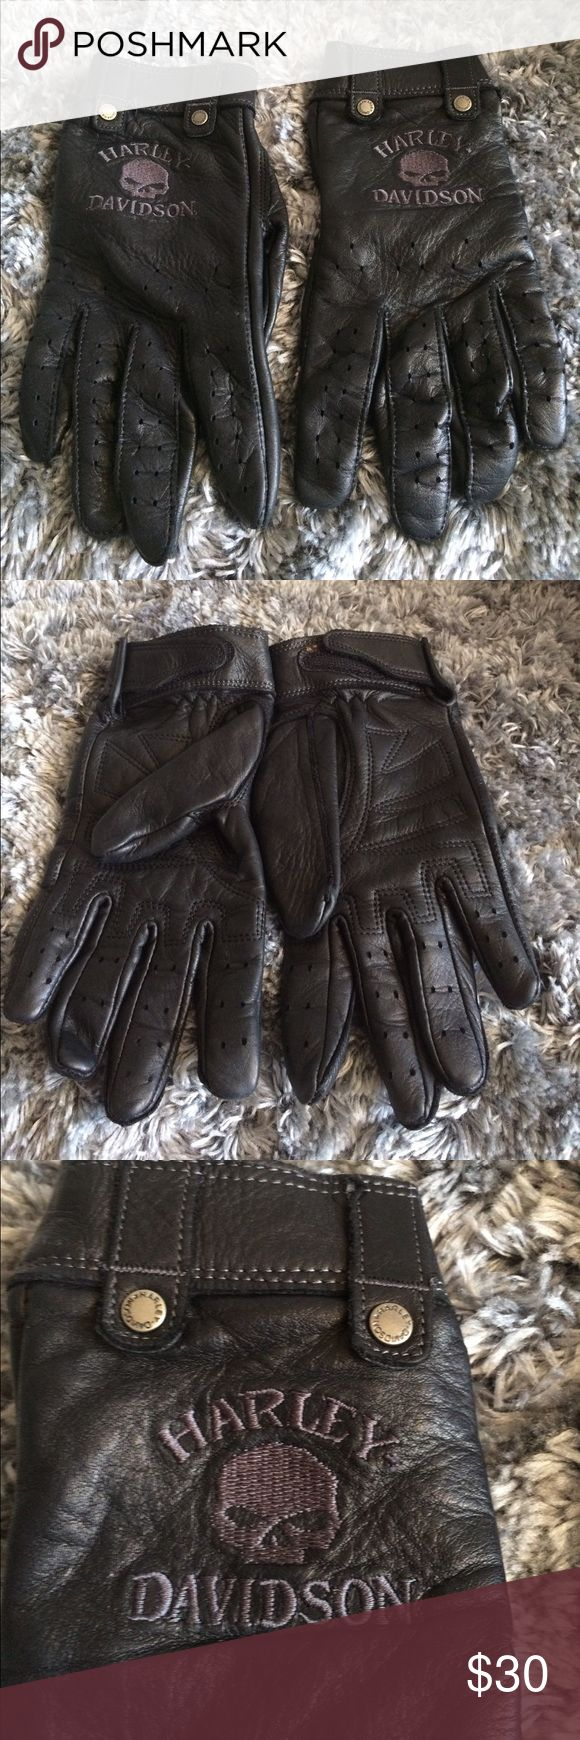 John lewis ladies black leather gloves - Harley Davidson Black Leather Gloves